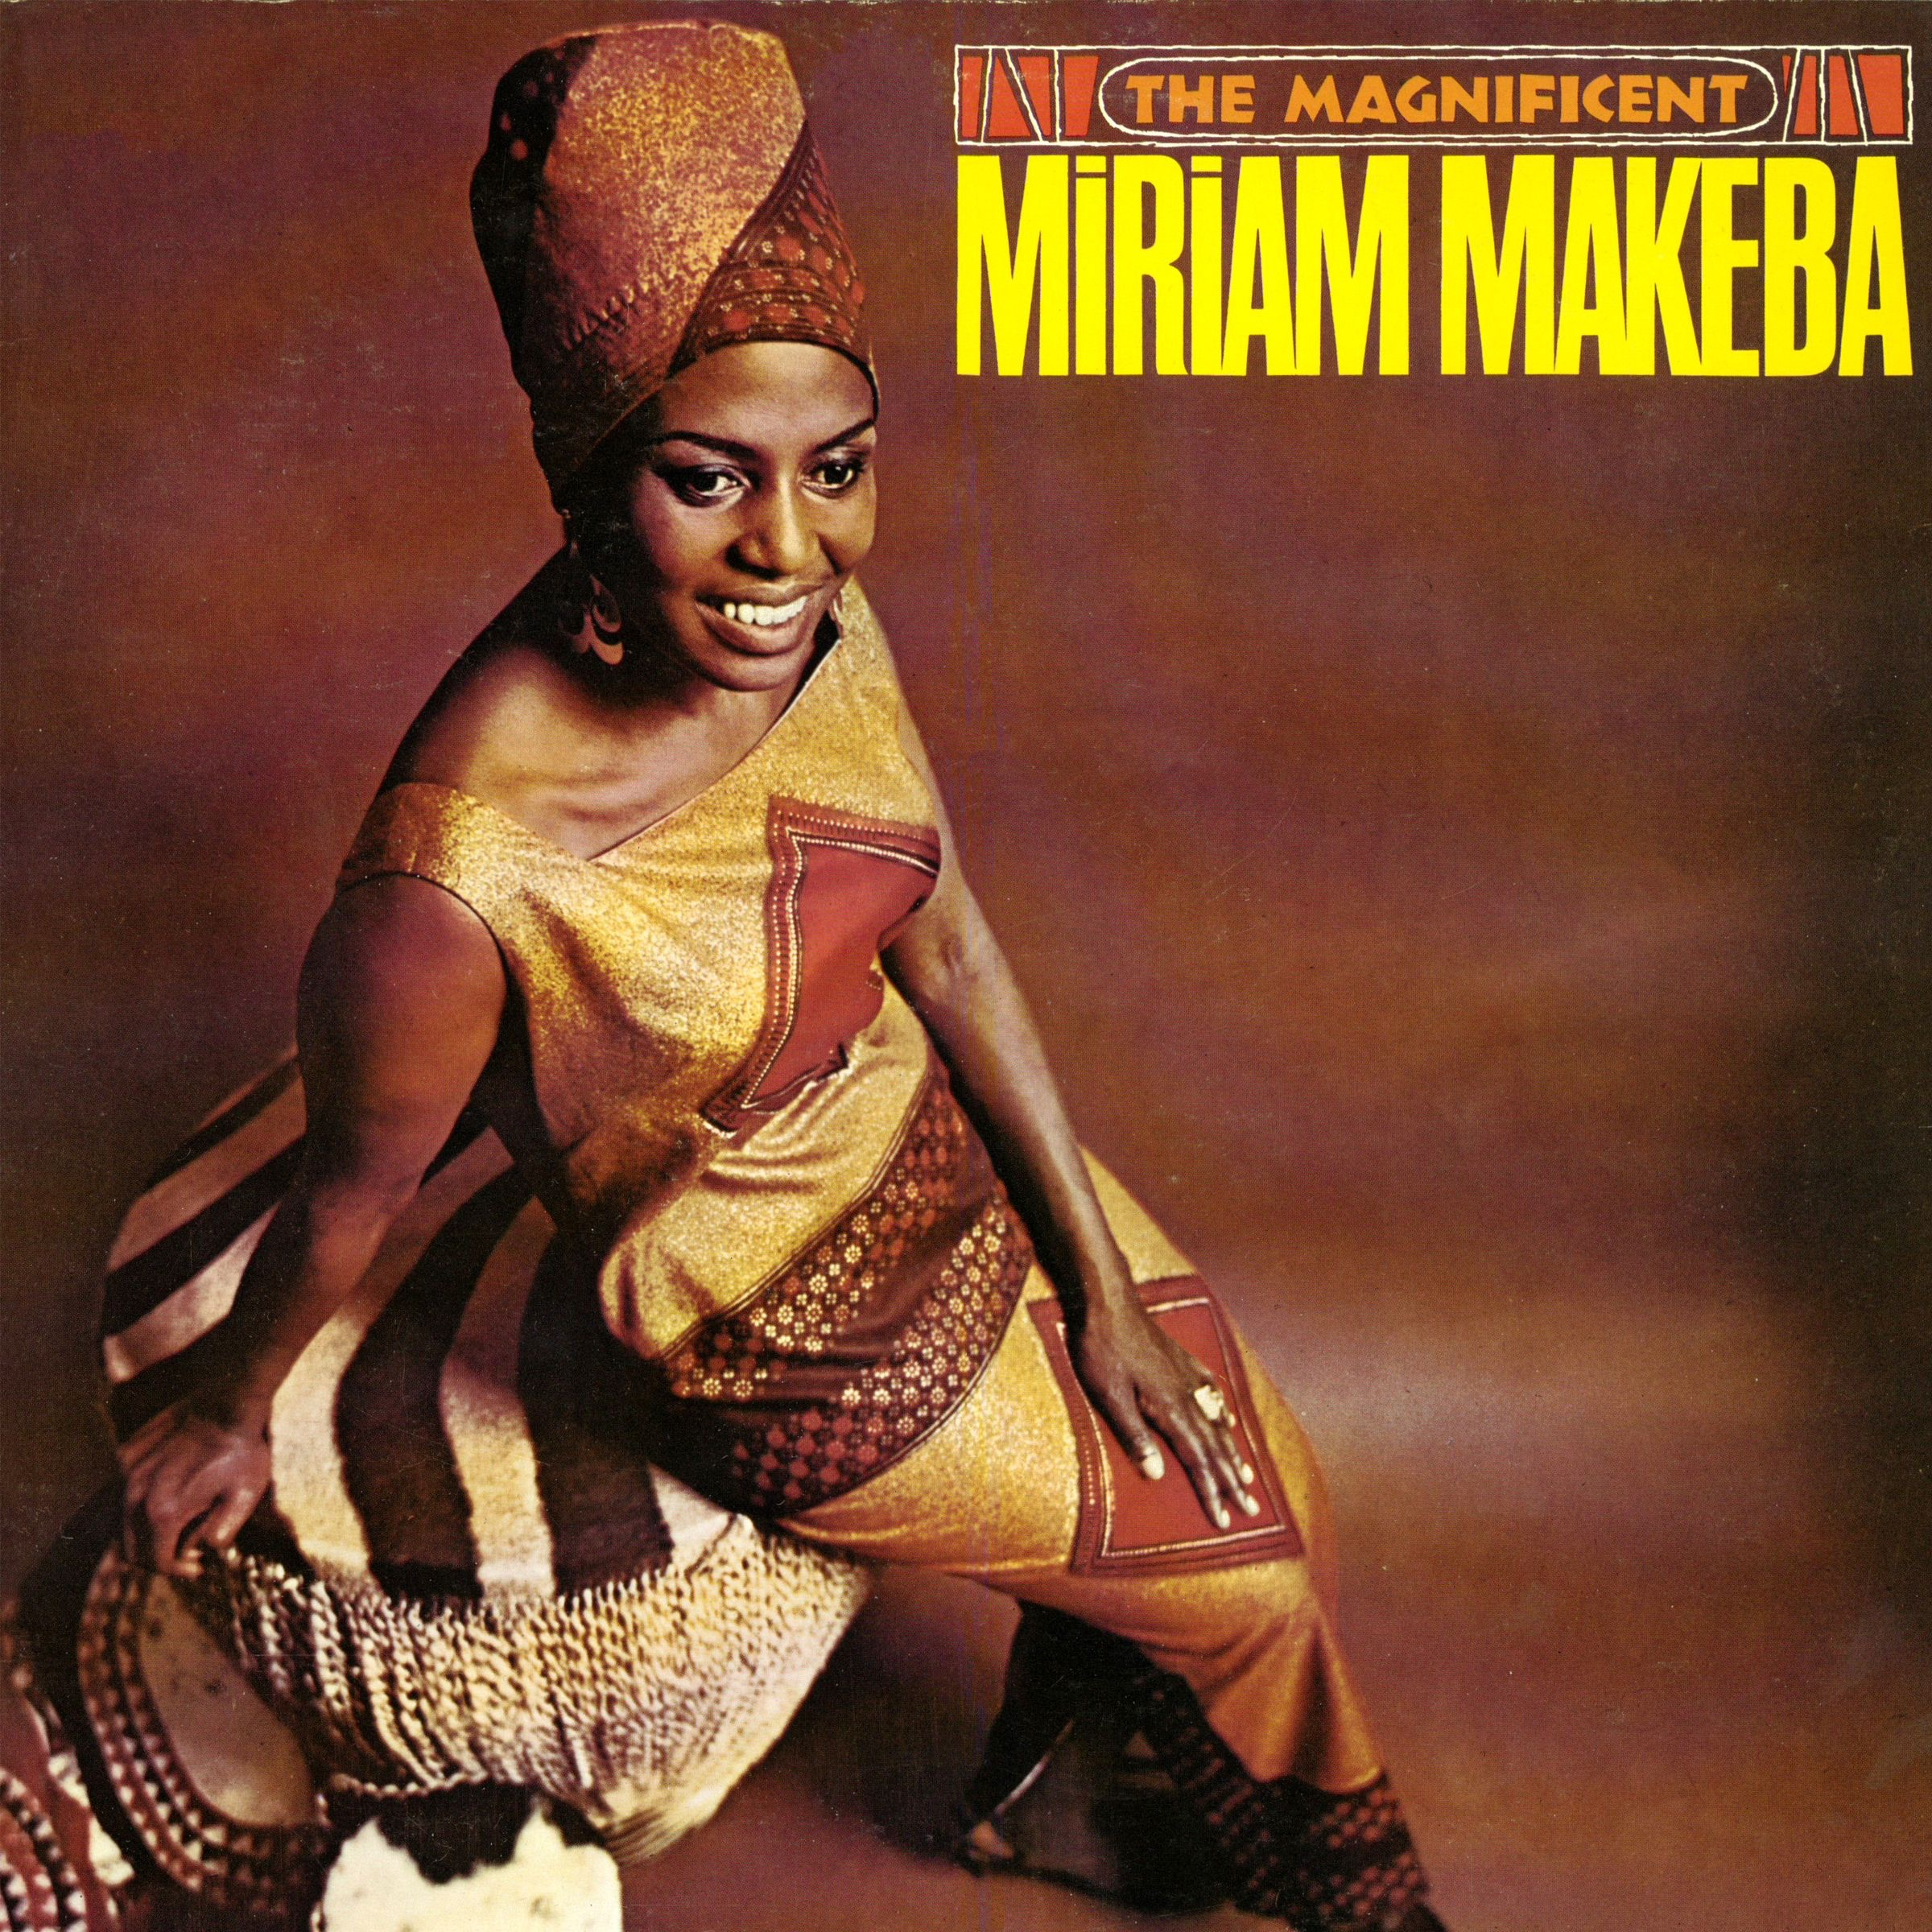 The Magnificent Miriam Makeba